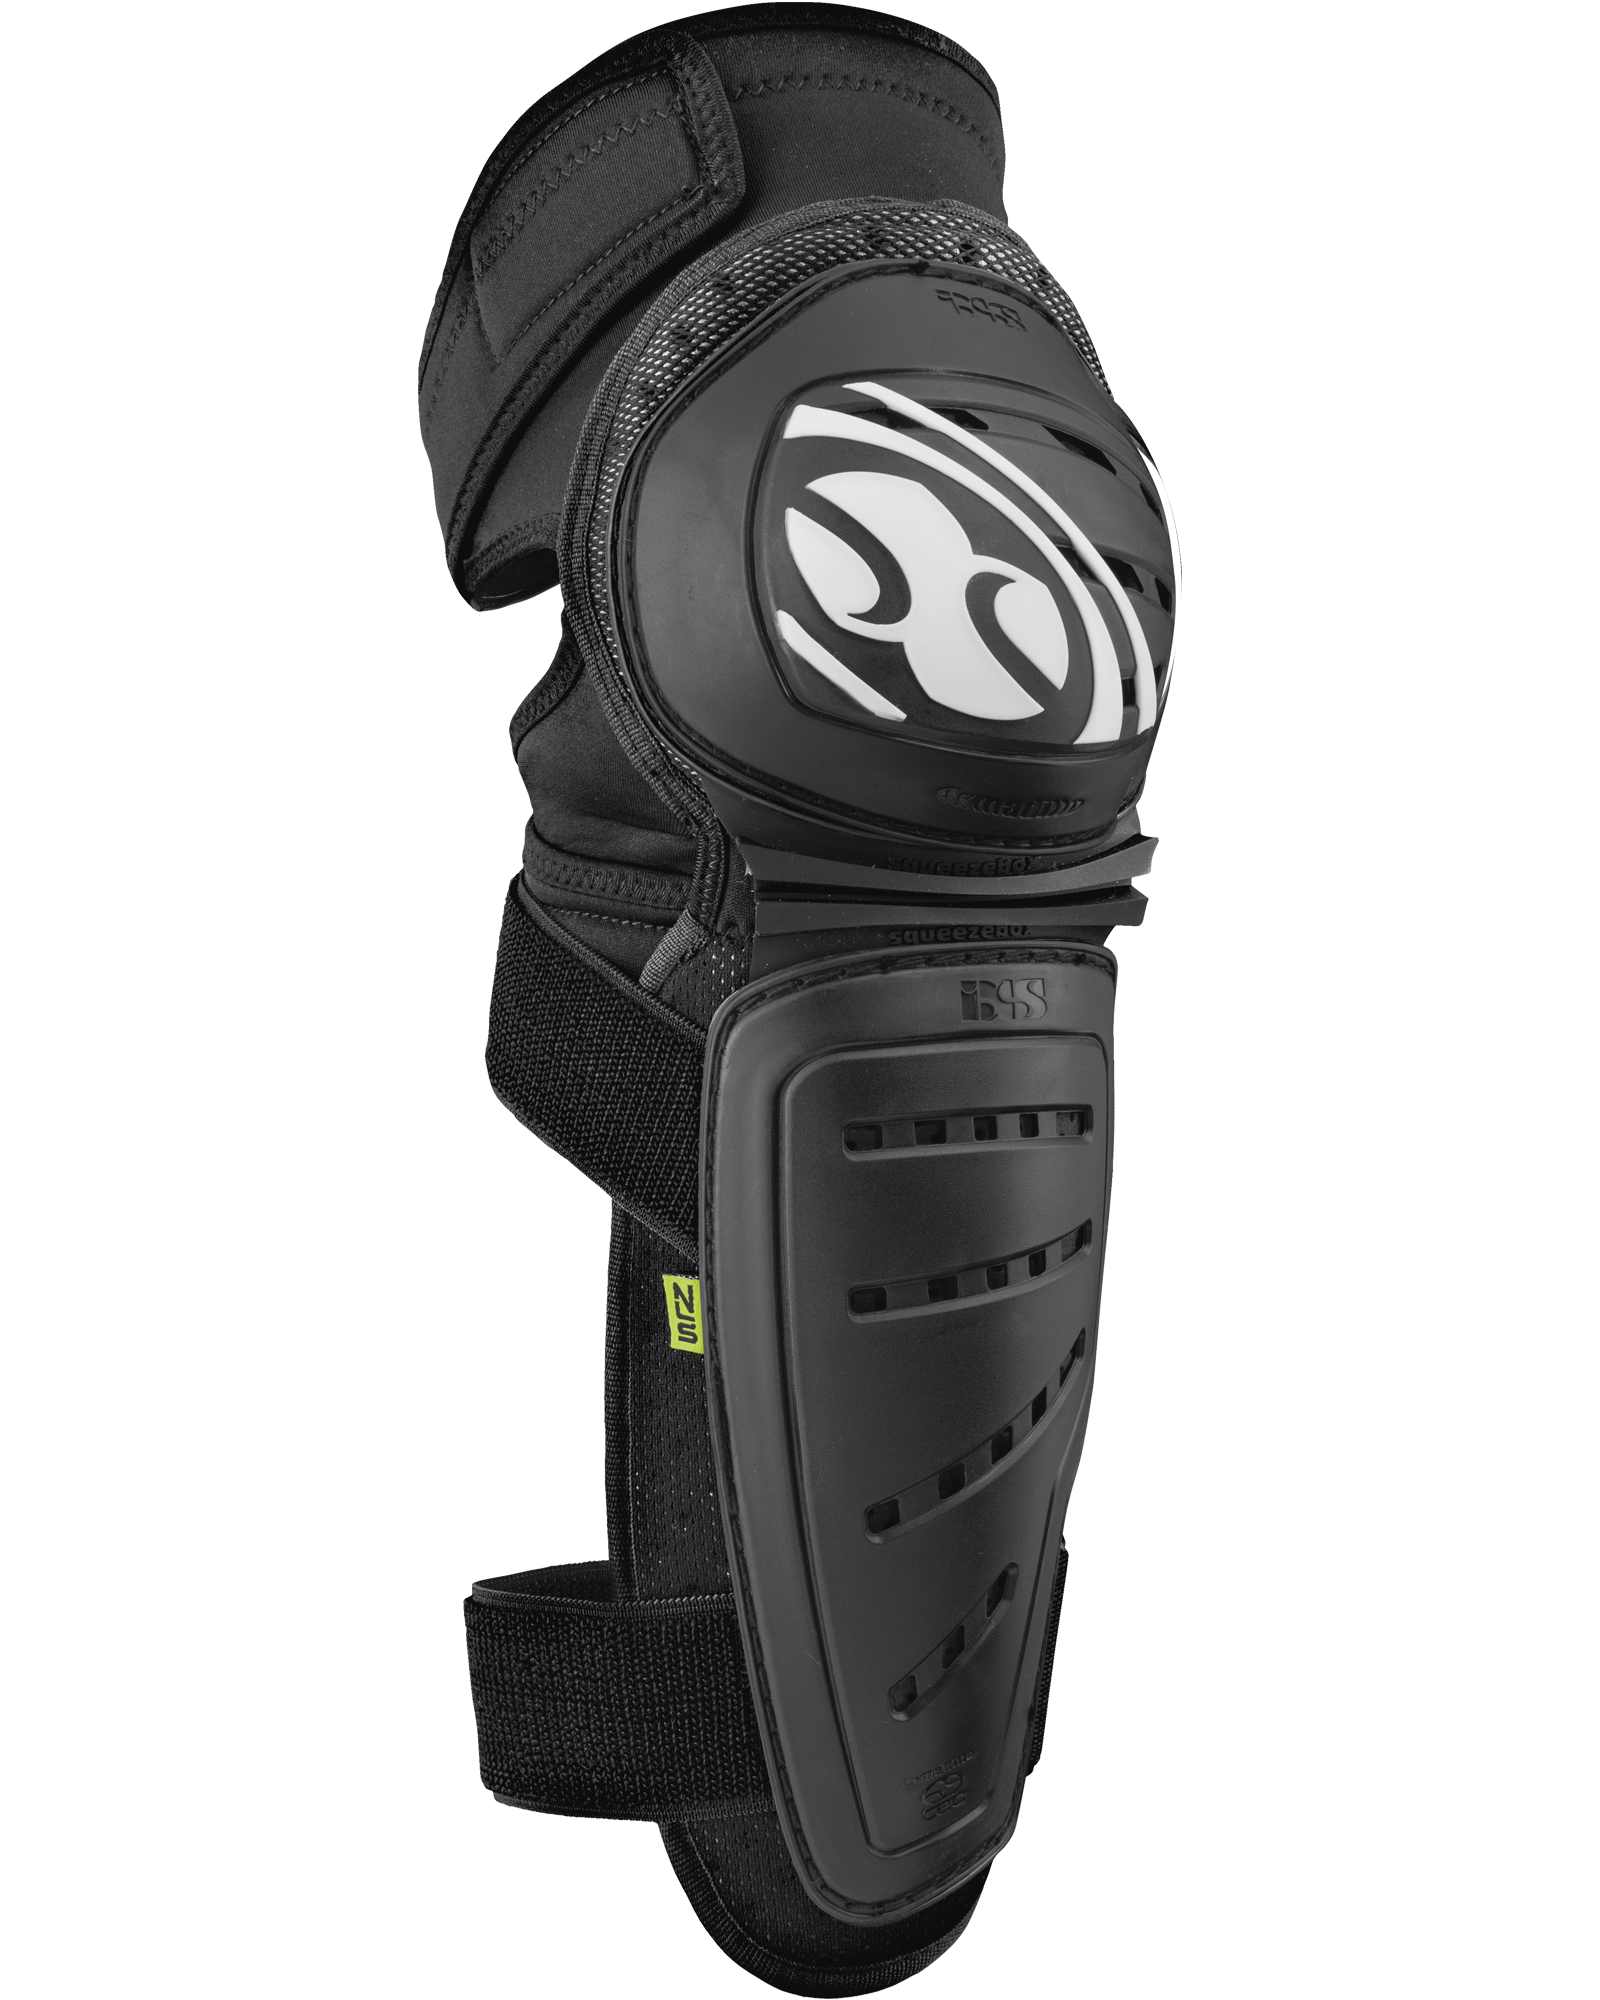 iXS Mallet Knee-Shin Guards | Amour